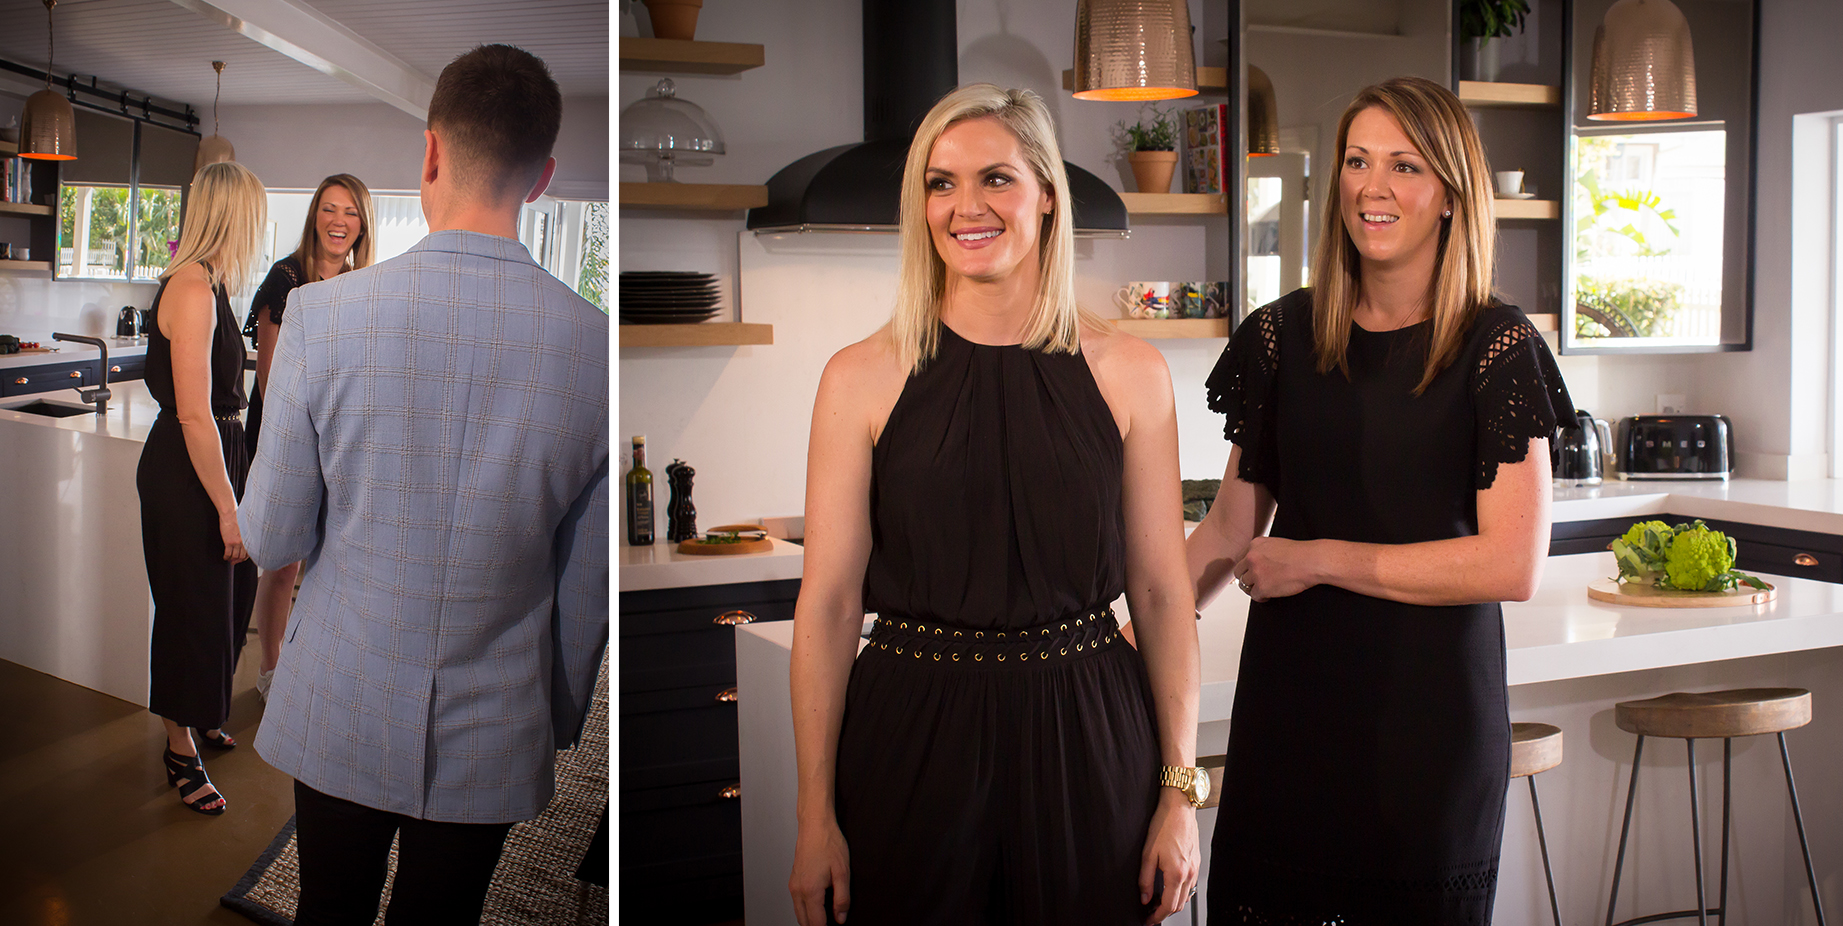 Kim Rowan and Wendy Douglas during the greeting scene in Episode 7 of the Caesarstone Kitchen of the Year competition filming.